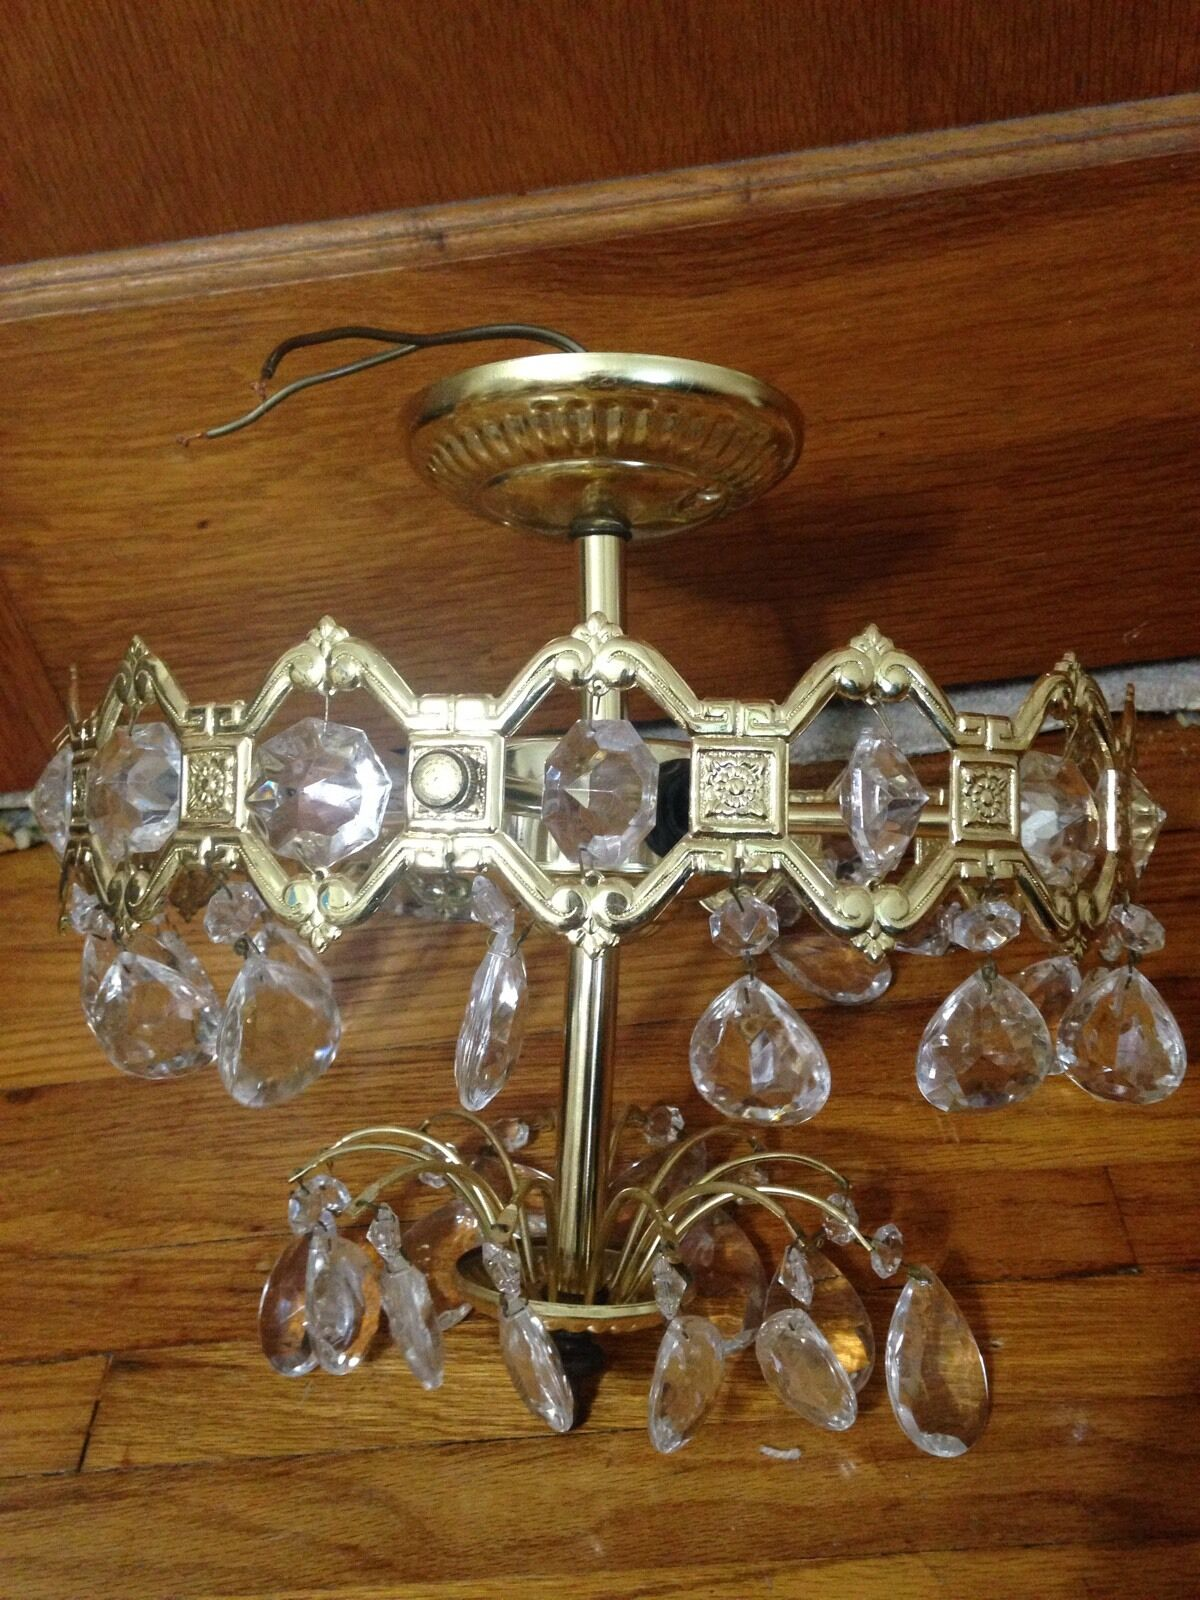 Vintage Gold Metal Light Fixture Ceiling Mount With Hanging Crystals Prisms